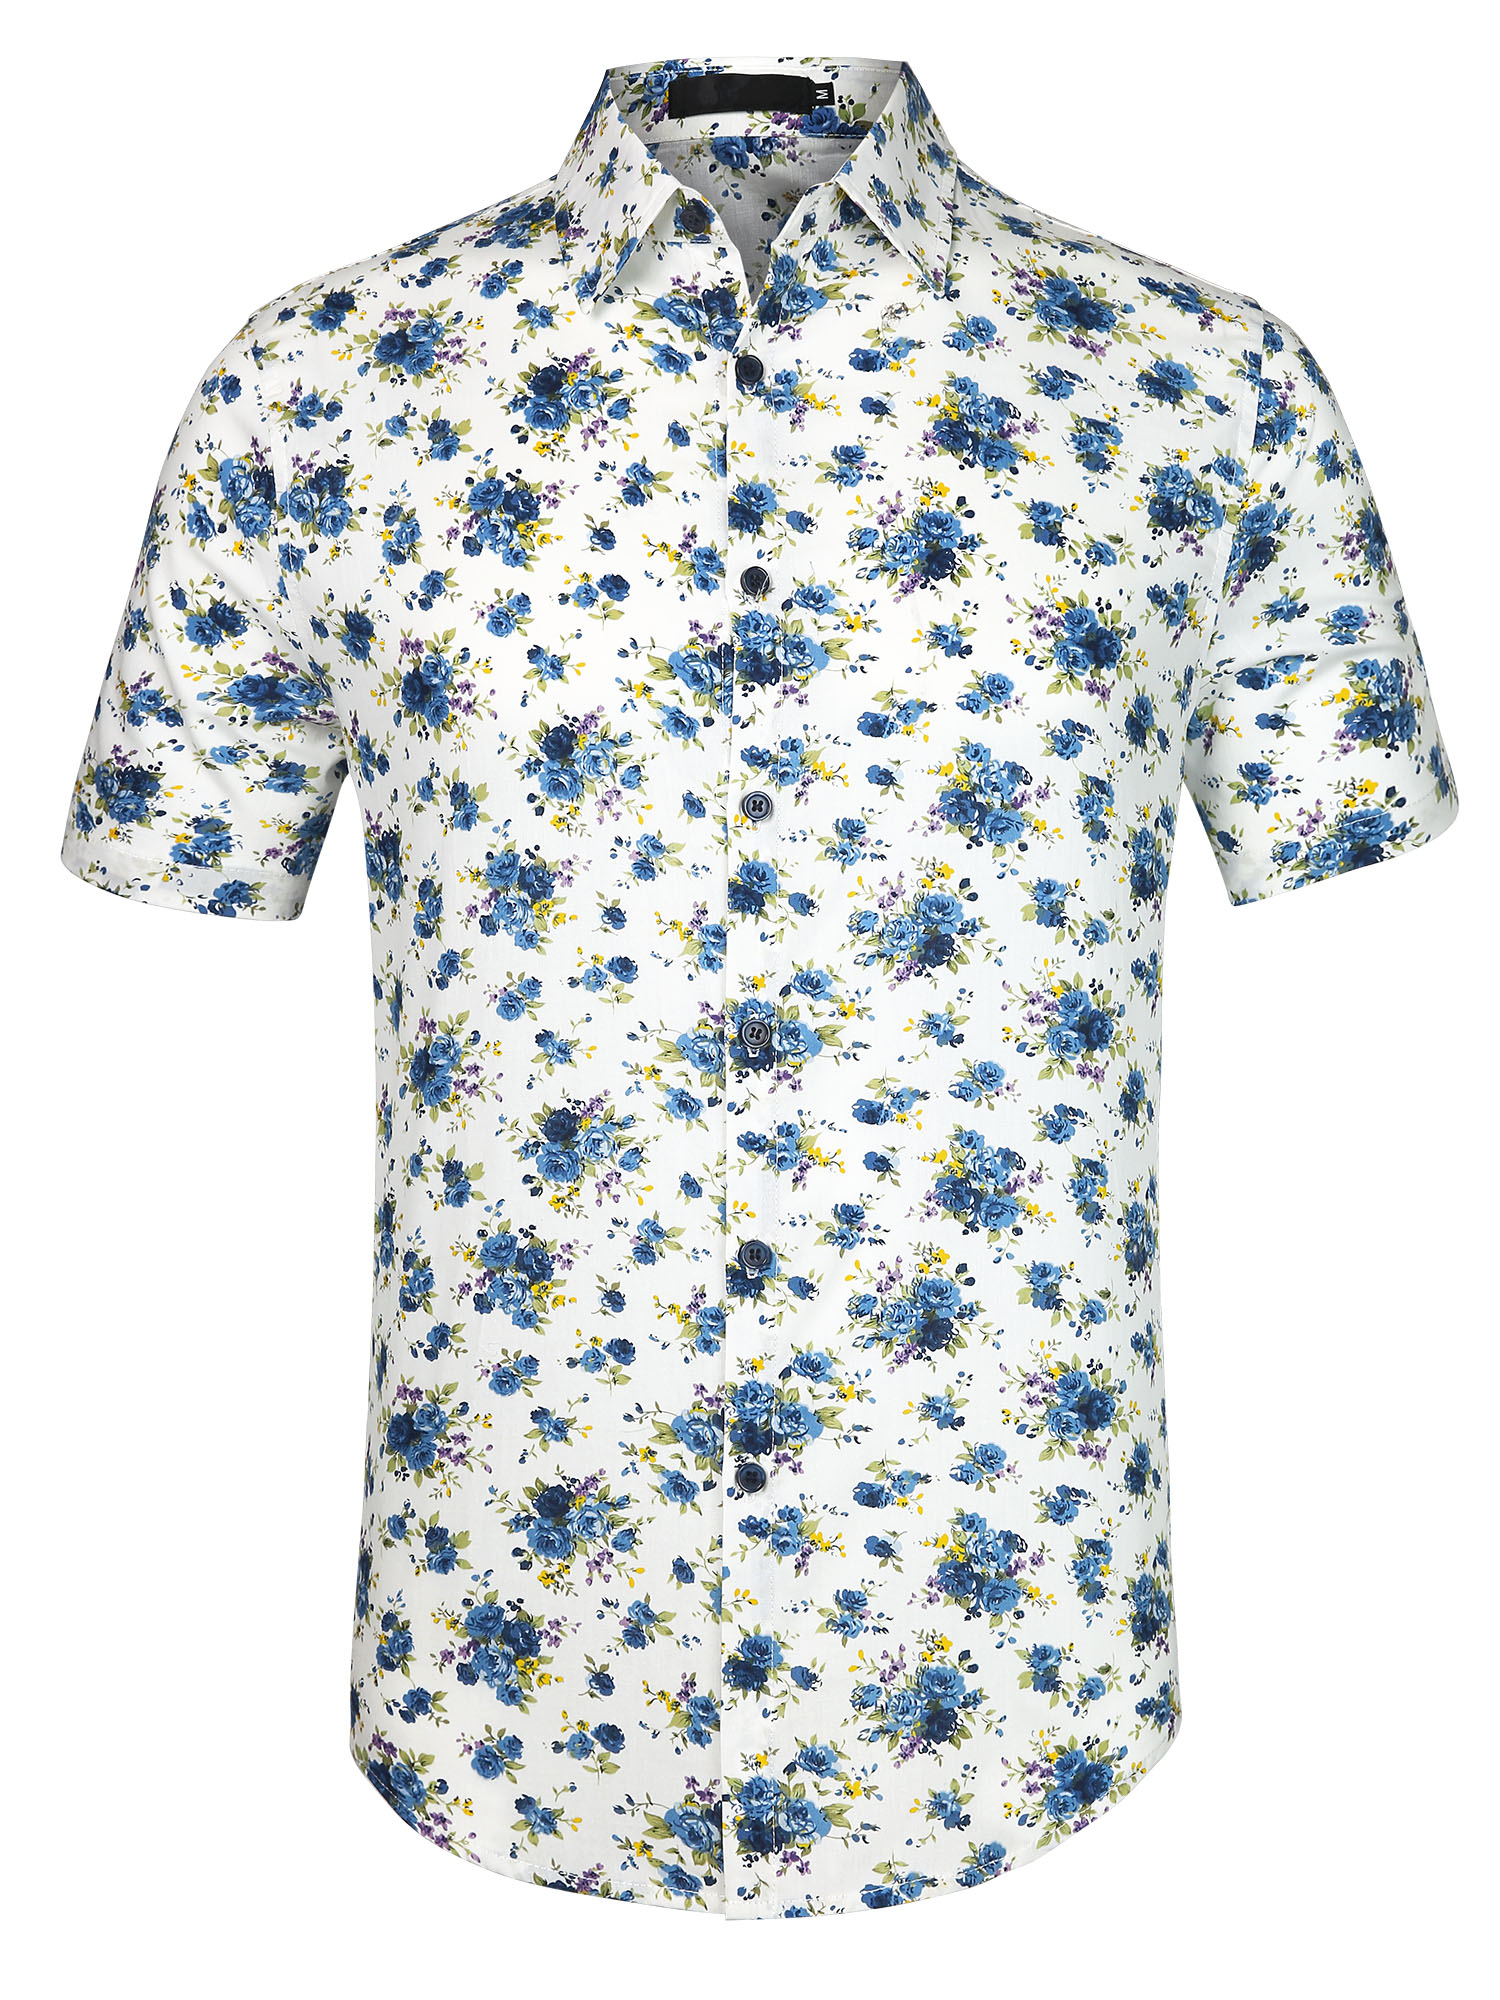 Men Short Sleeves Floral Pattern Shirts Off White Extra Large